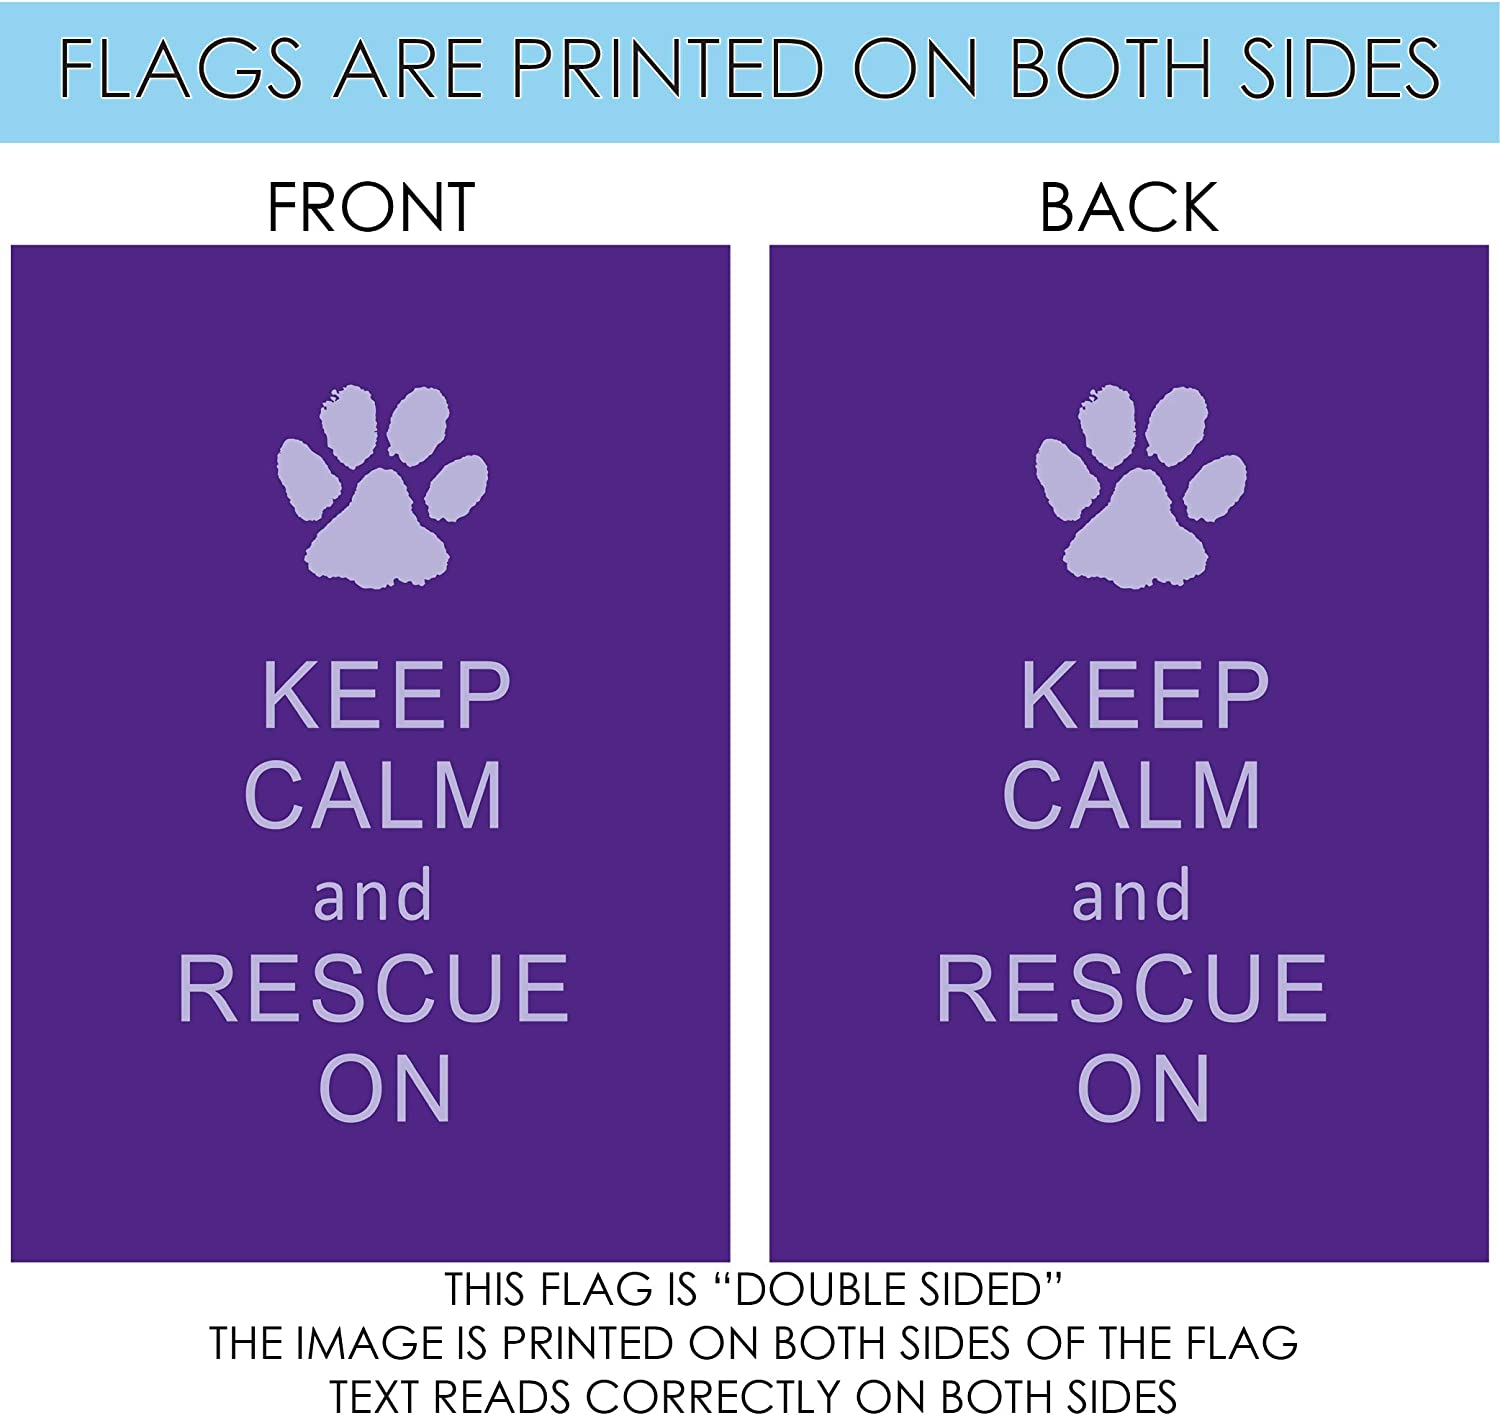 Amazon Com Toland Home Garden Rescue On 28 X 40 Inch Decorative Keep Calm Puppy Dog Animal Paw Double Sided House Flag Garden Outdoor